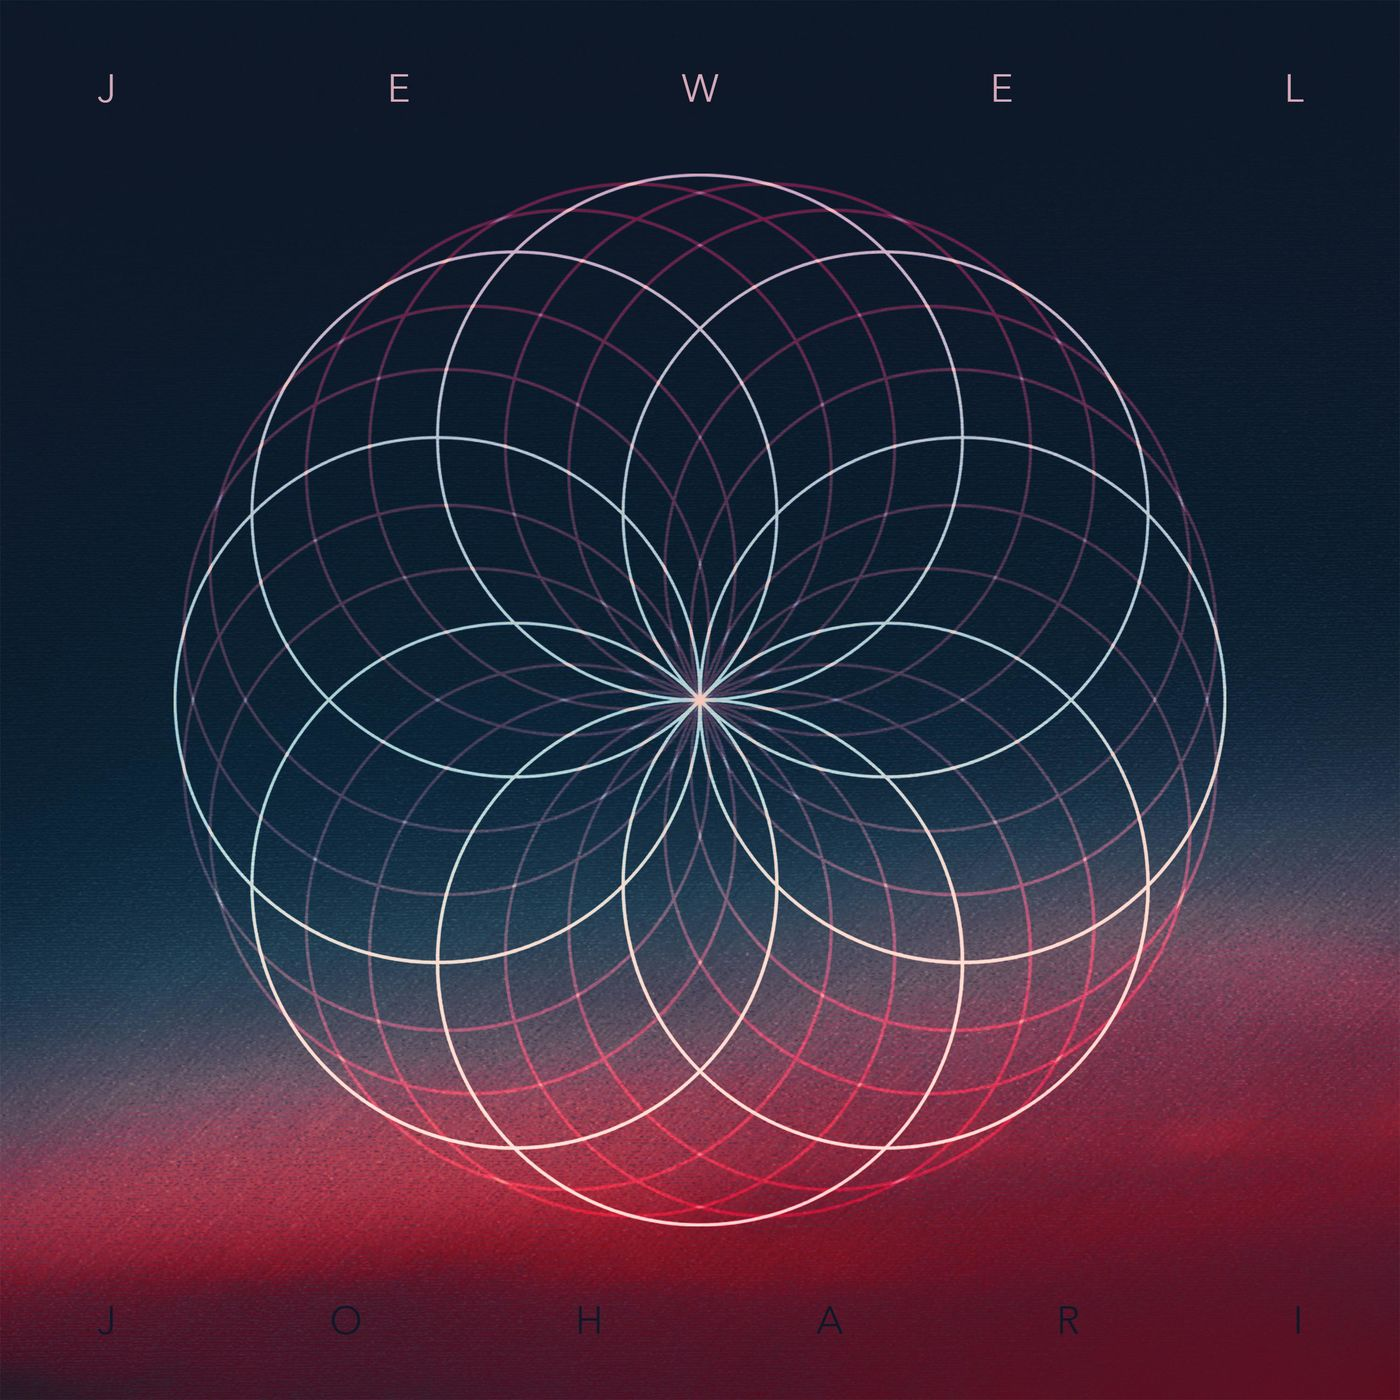 Johari - Jewel [single] (2019)